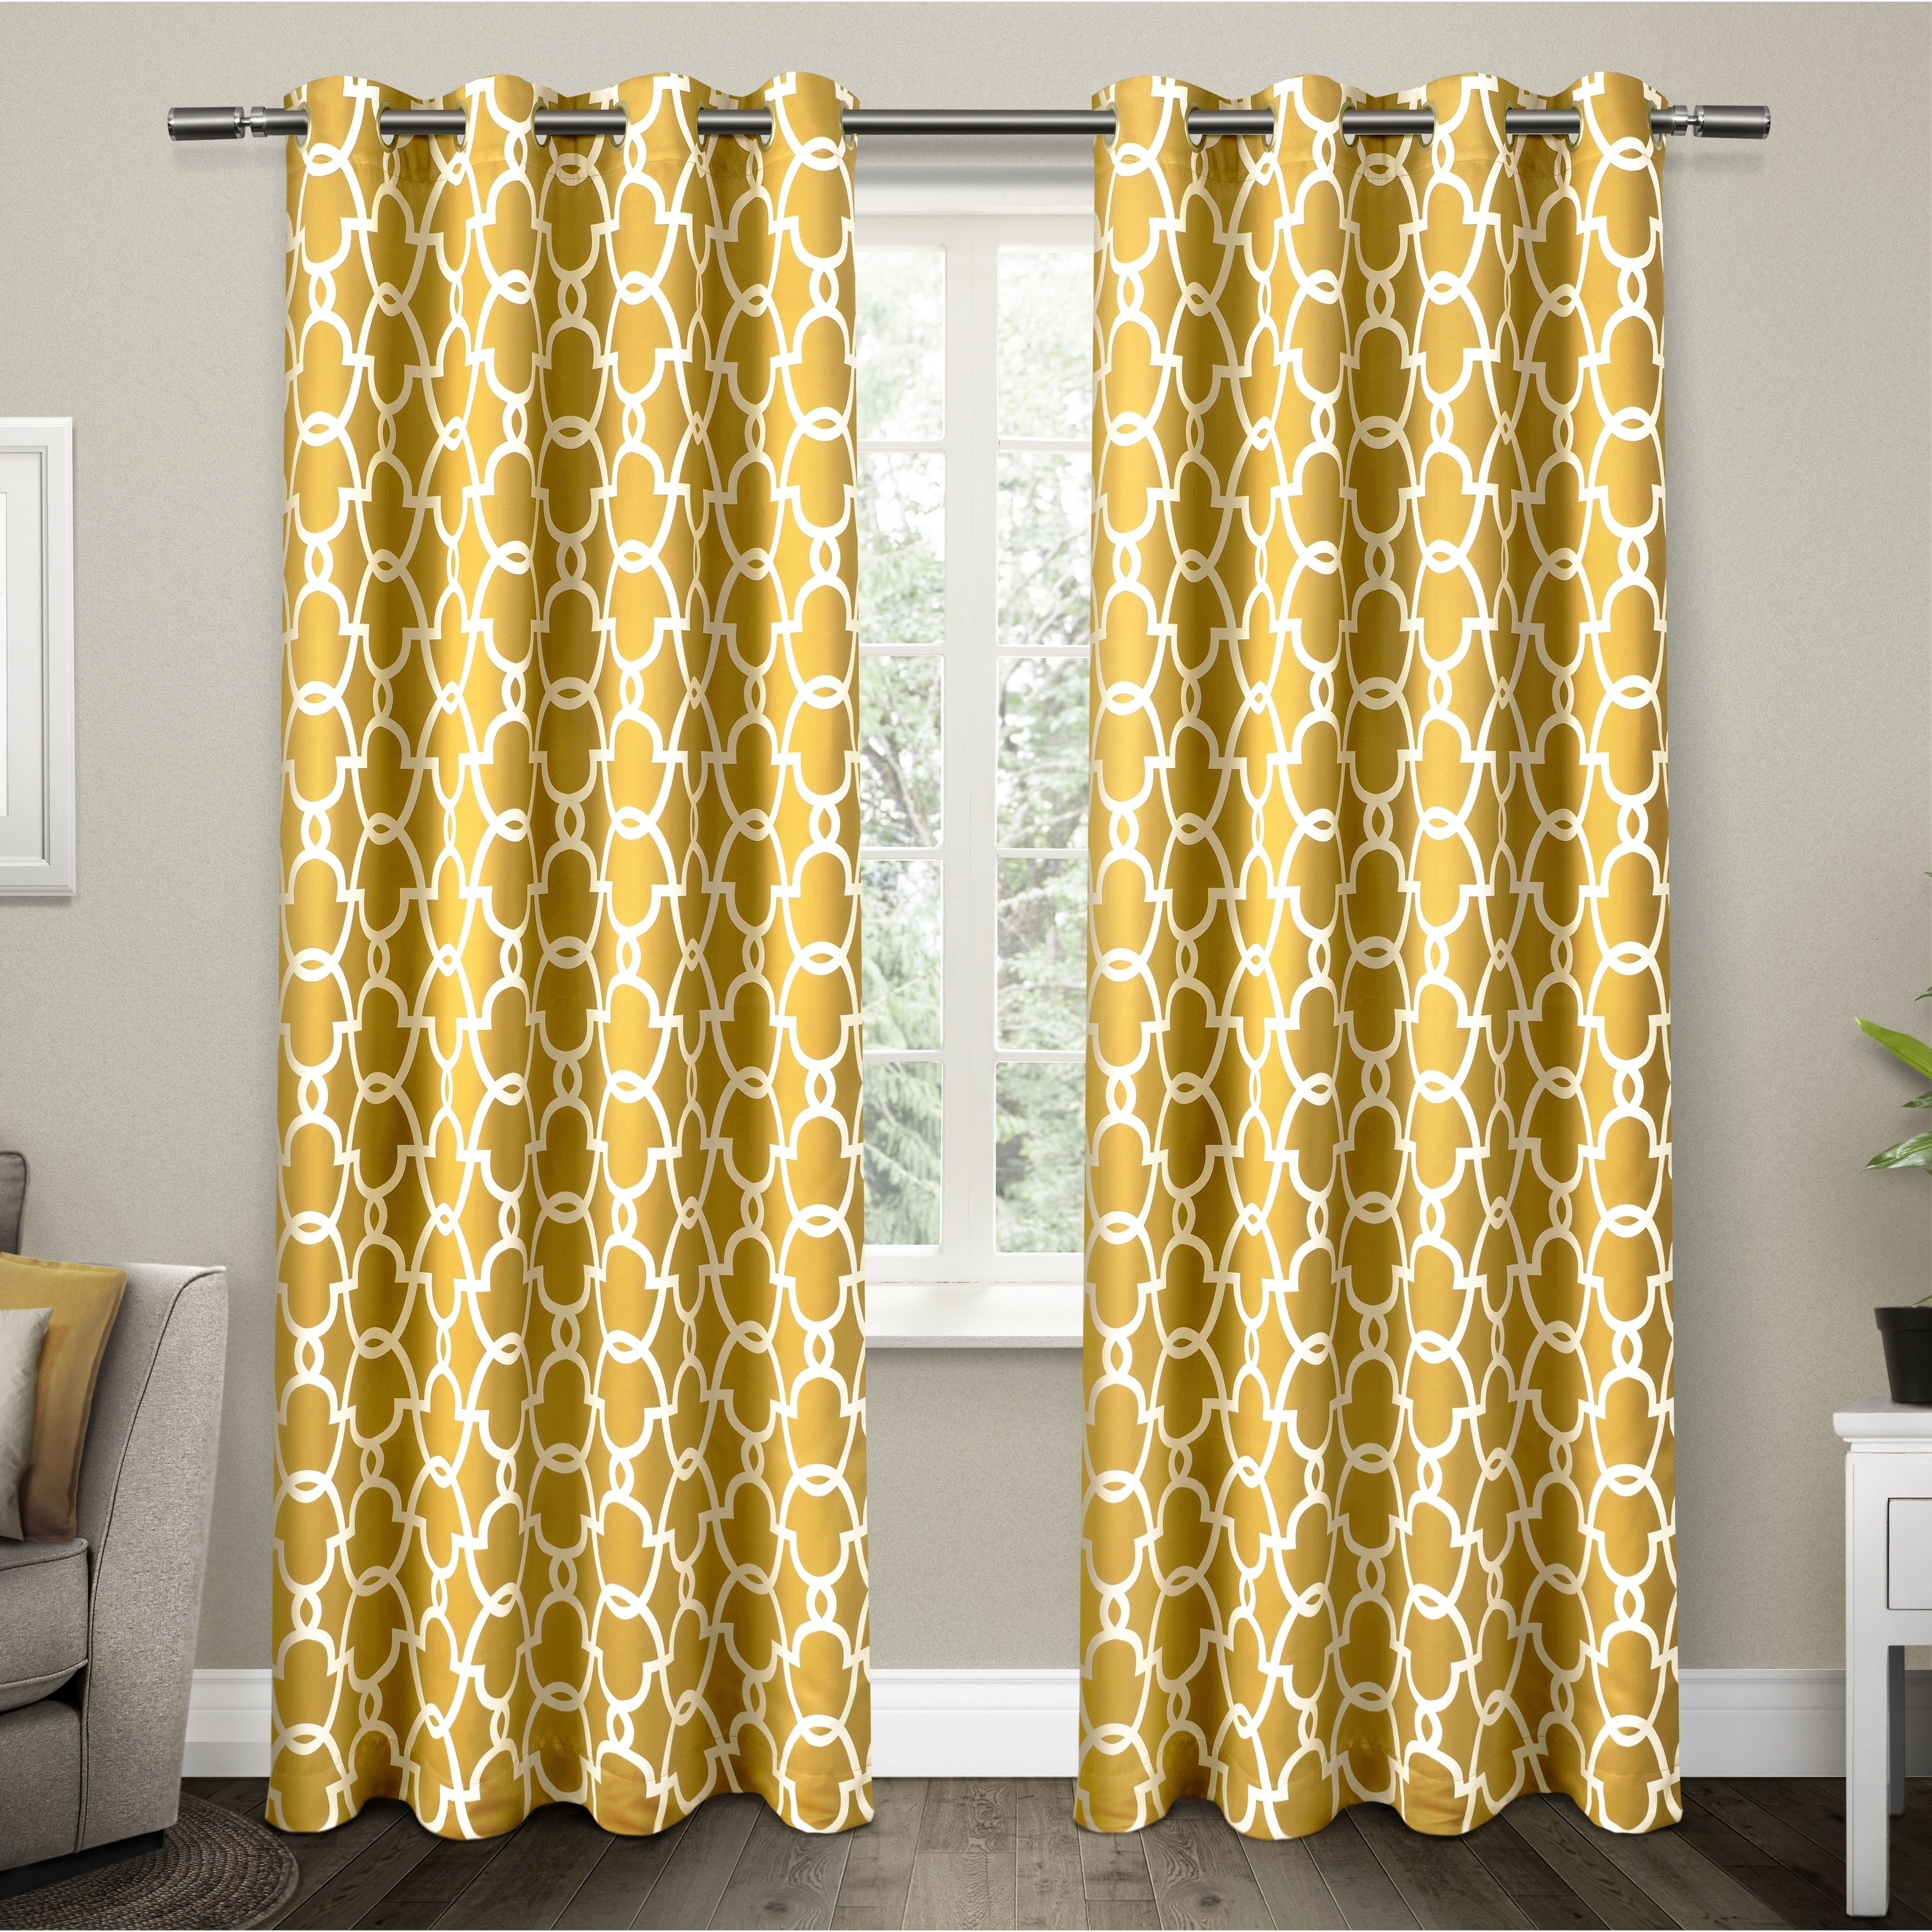 Marvelous ATI Home Gates Blackout Thermal Curtain Panel Pair With Grommet Top (4  Options Available)